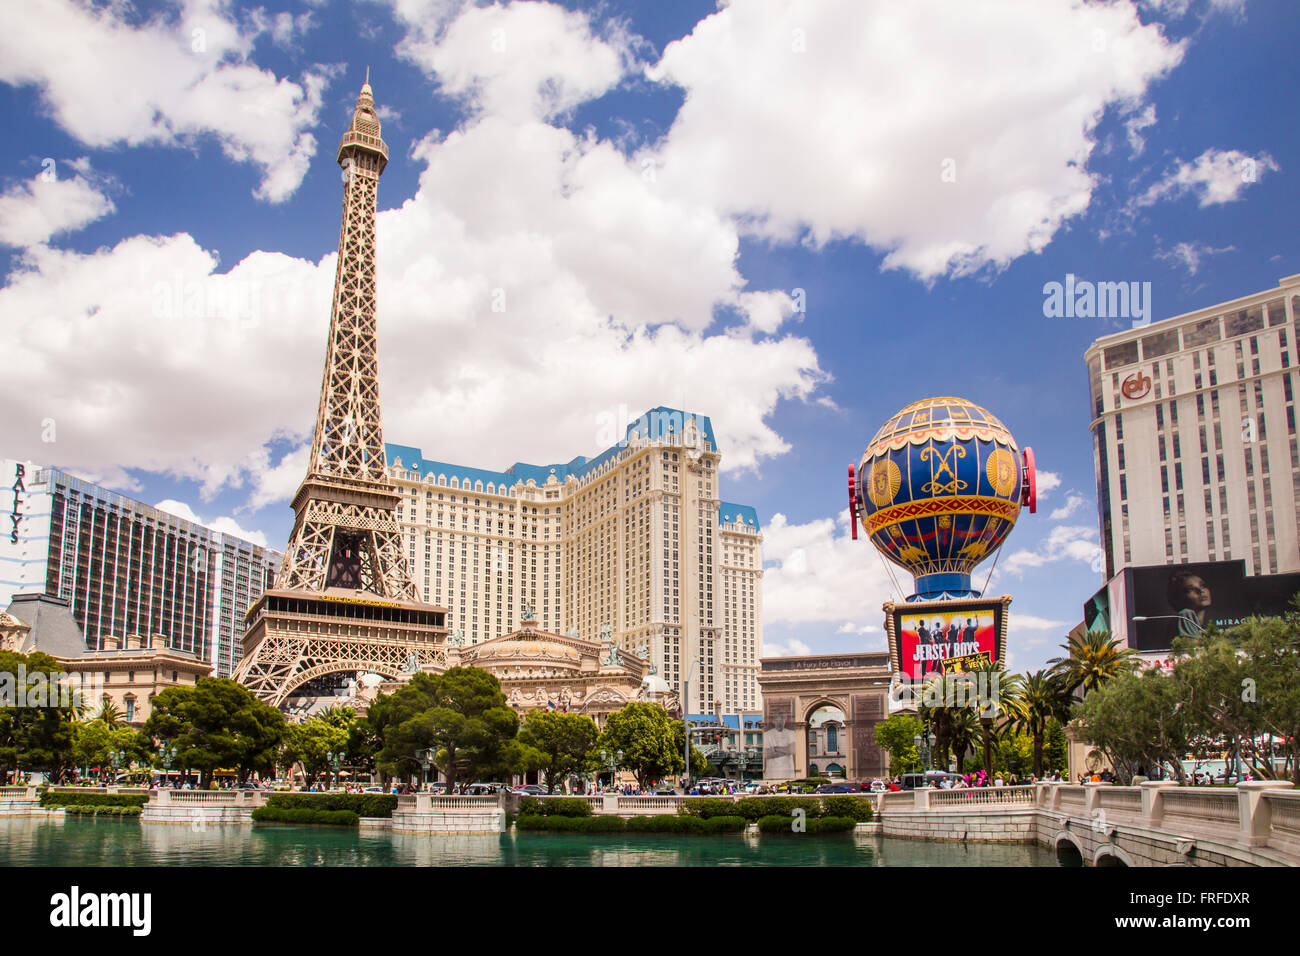 View of resort casinos along the Vegas Street in Las Vegas Nevada - Stock Image